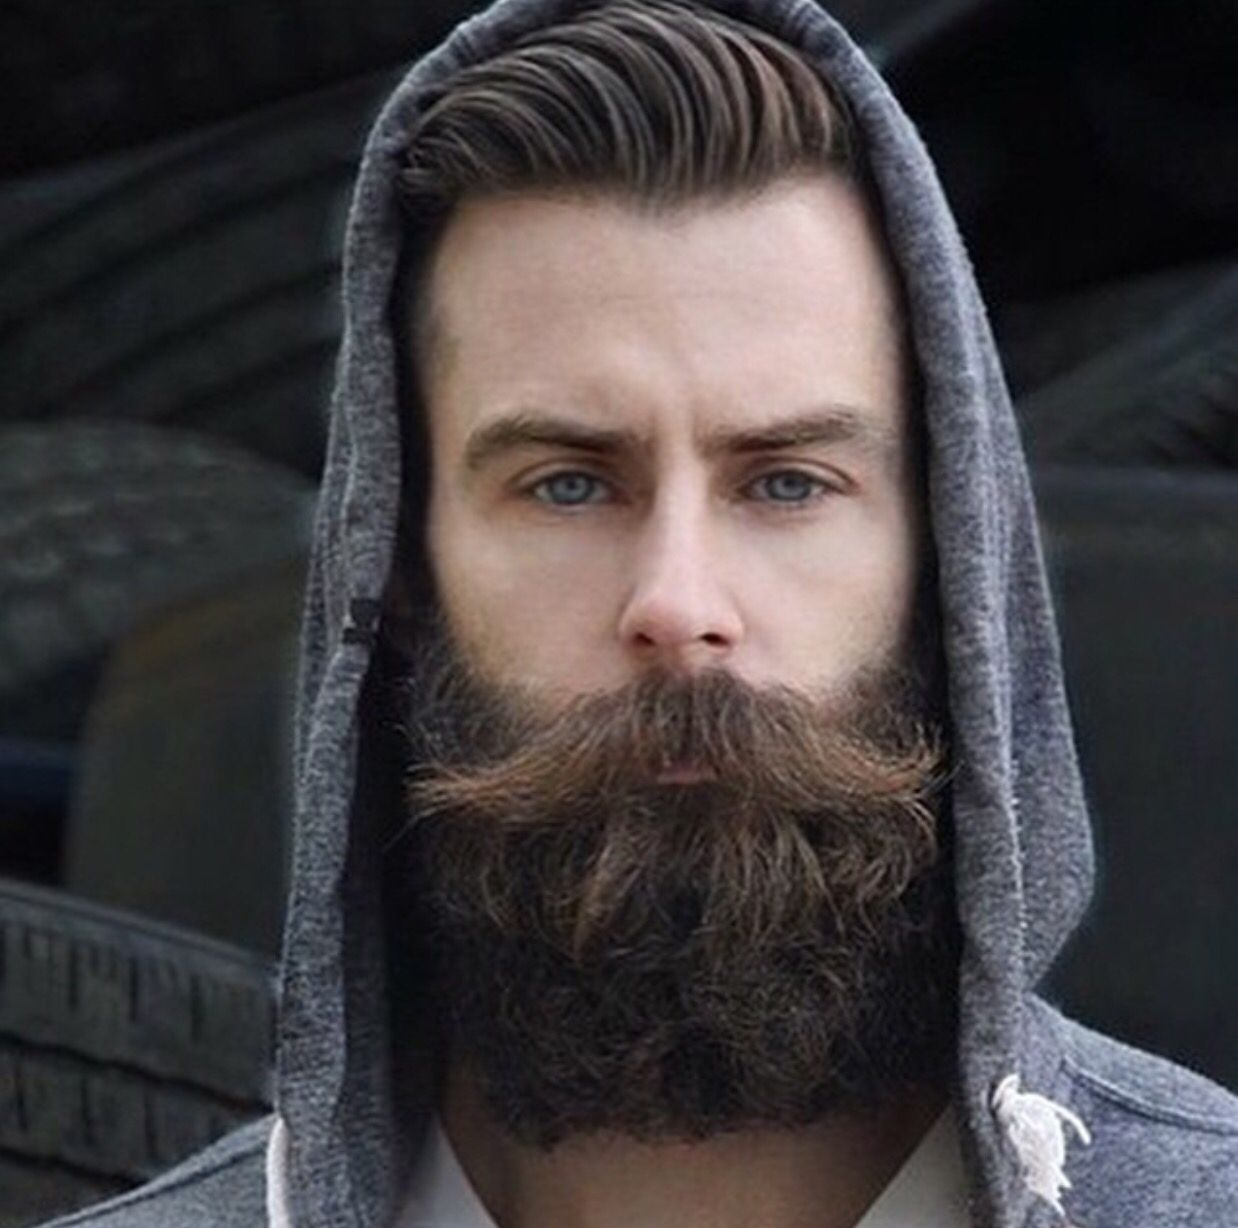 Oblong face haircut men thebeardapostle  suave  pinterest  beard styles epic beard